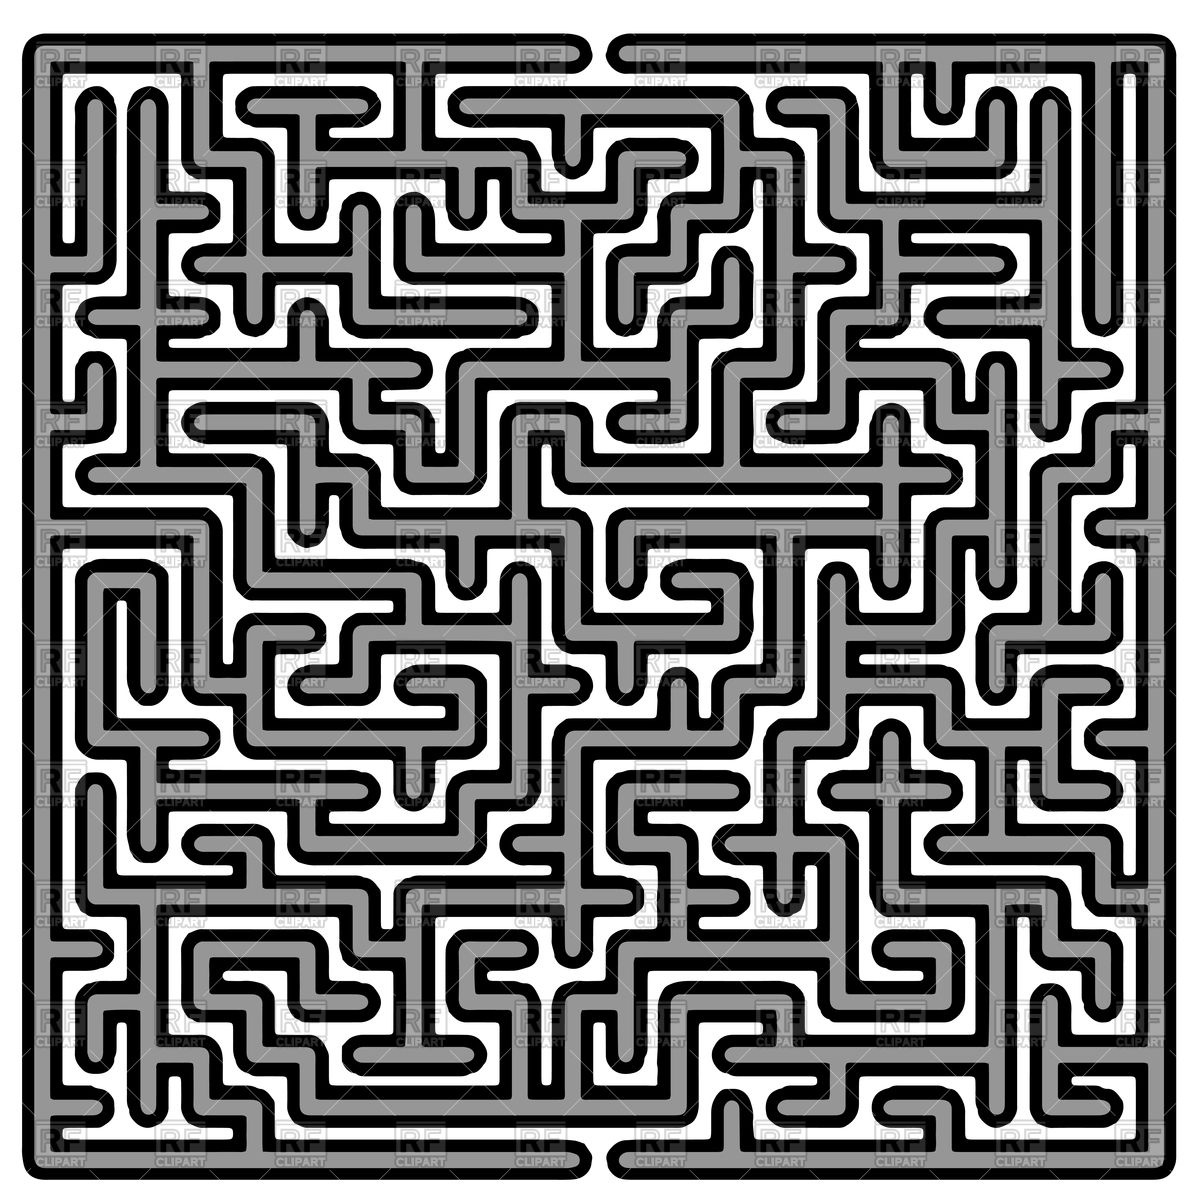 Labyrinth on white background Vector Image #94764.